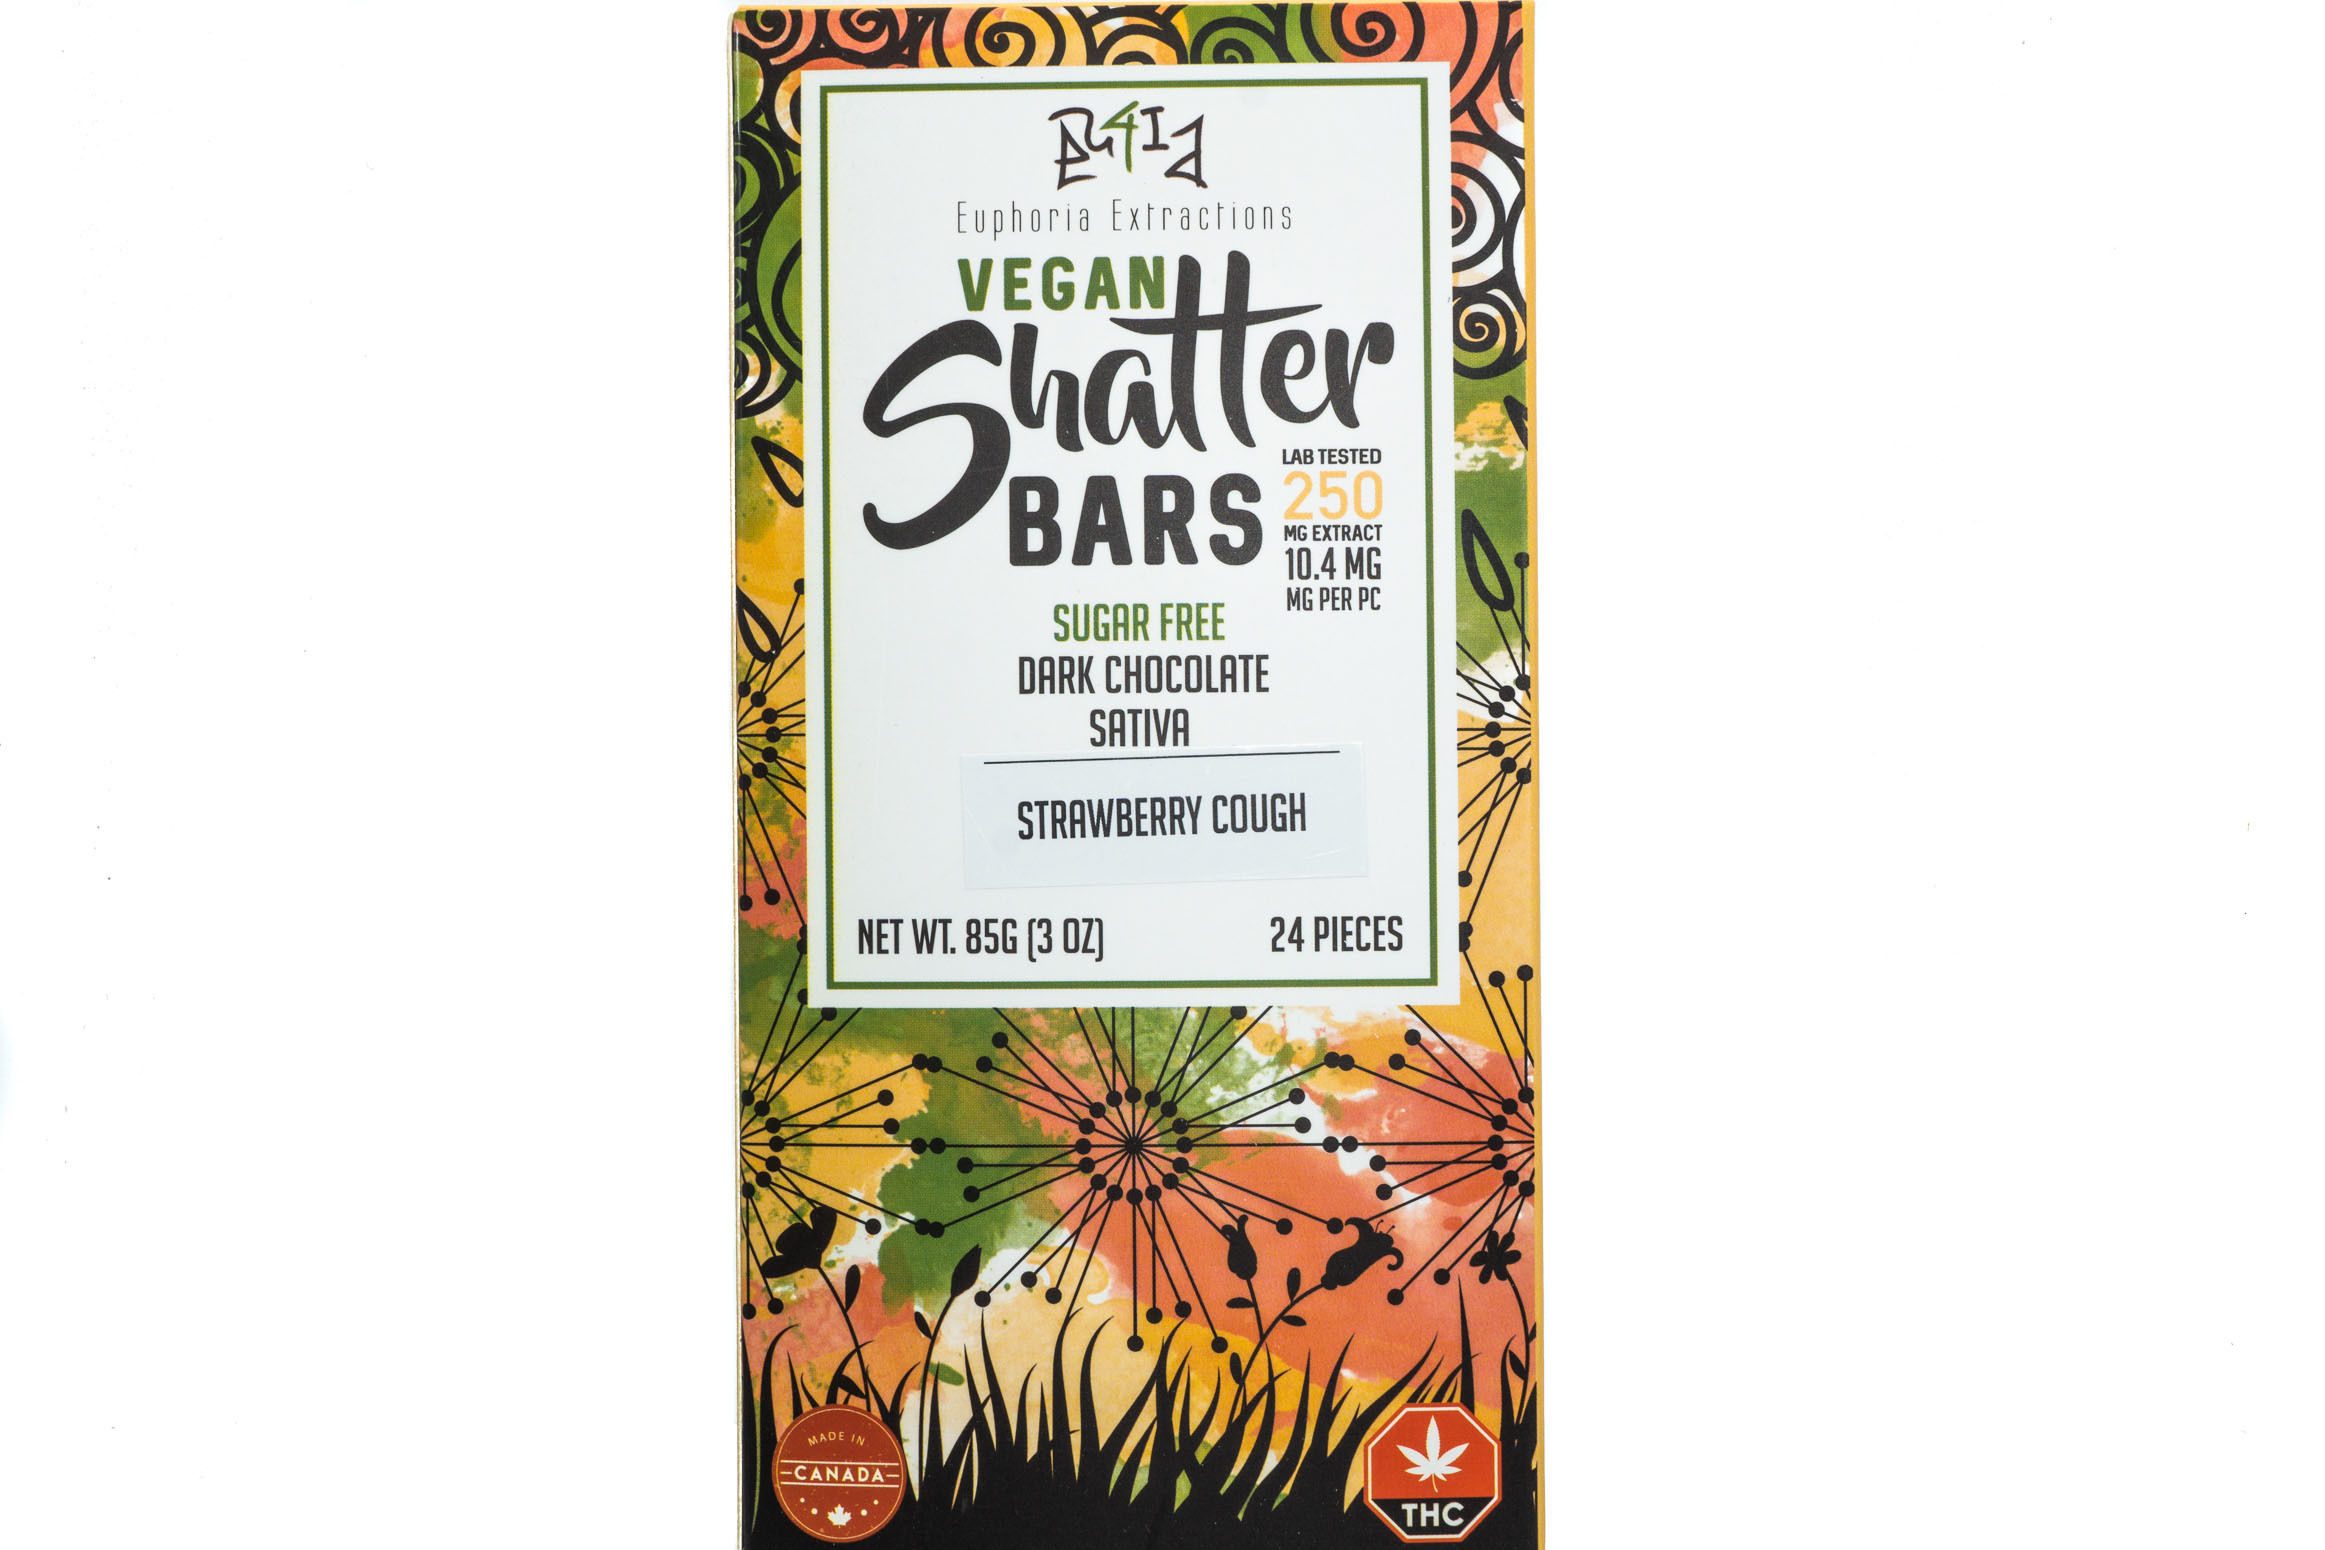 Vegan Dark Chocolate Sativa Shatter Bar By Euphoria Extractions (Sugar Free) (250mg) (Current Strain Strawberry Cough) 01296